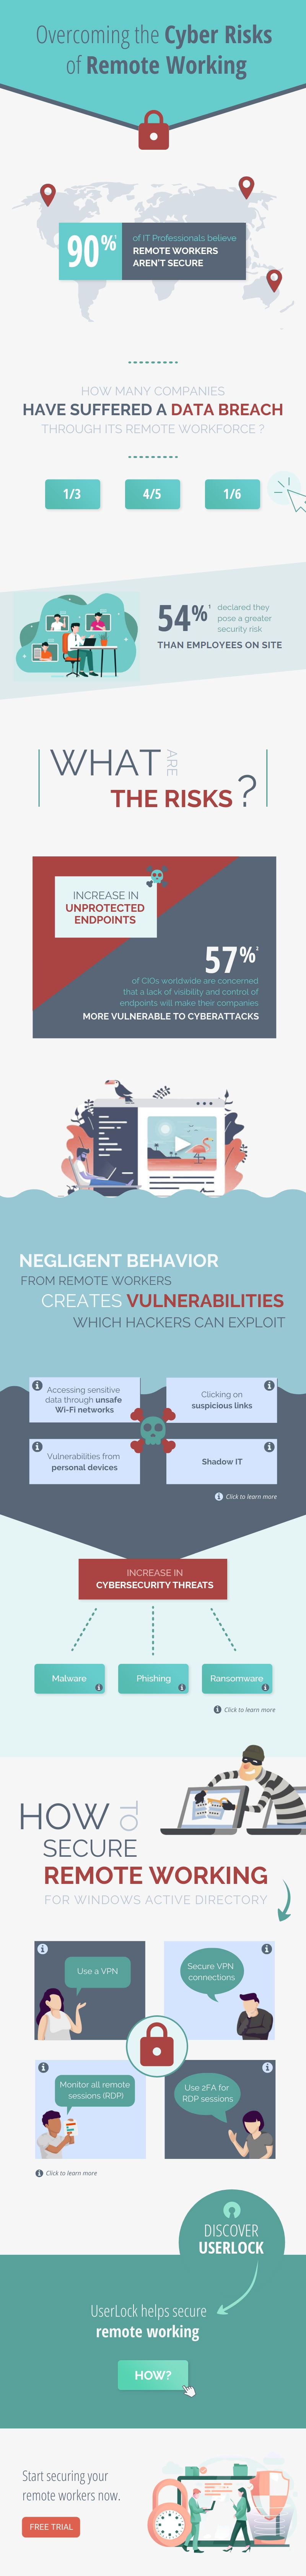 Infographic - Overcoming the Cyber Risks of Remote Working